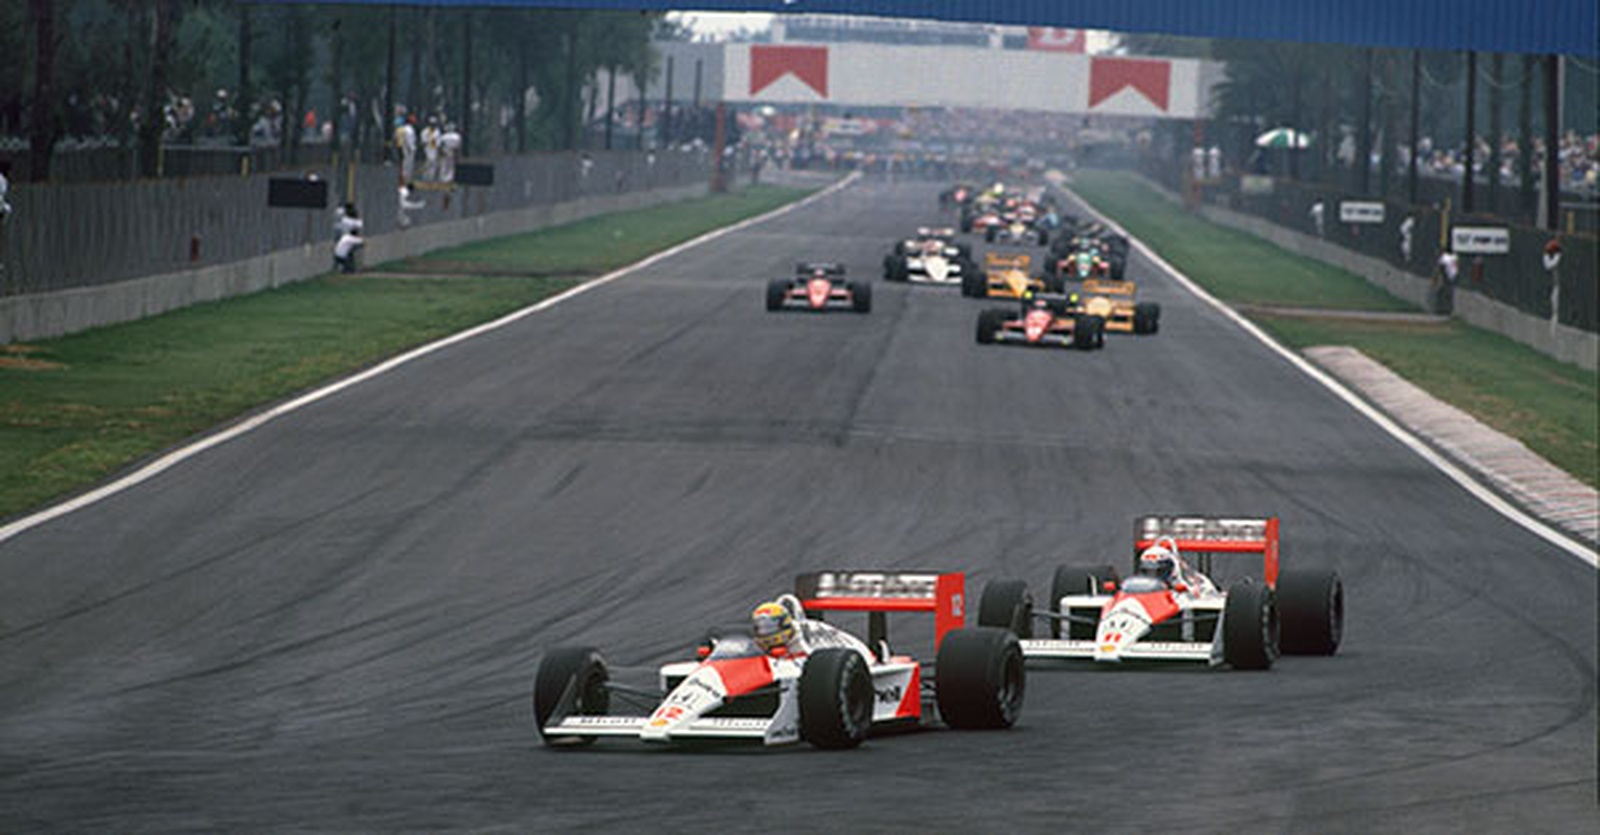 Image result for autódromo hermanos rodríguez 1988